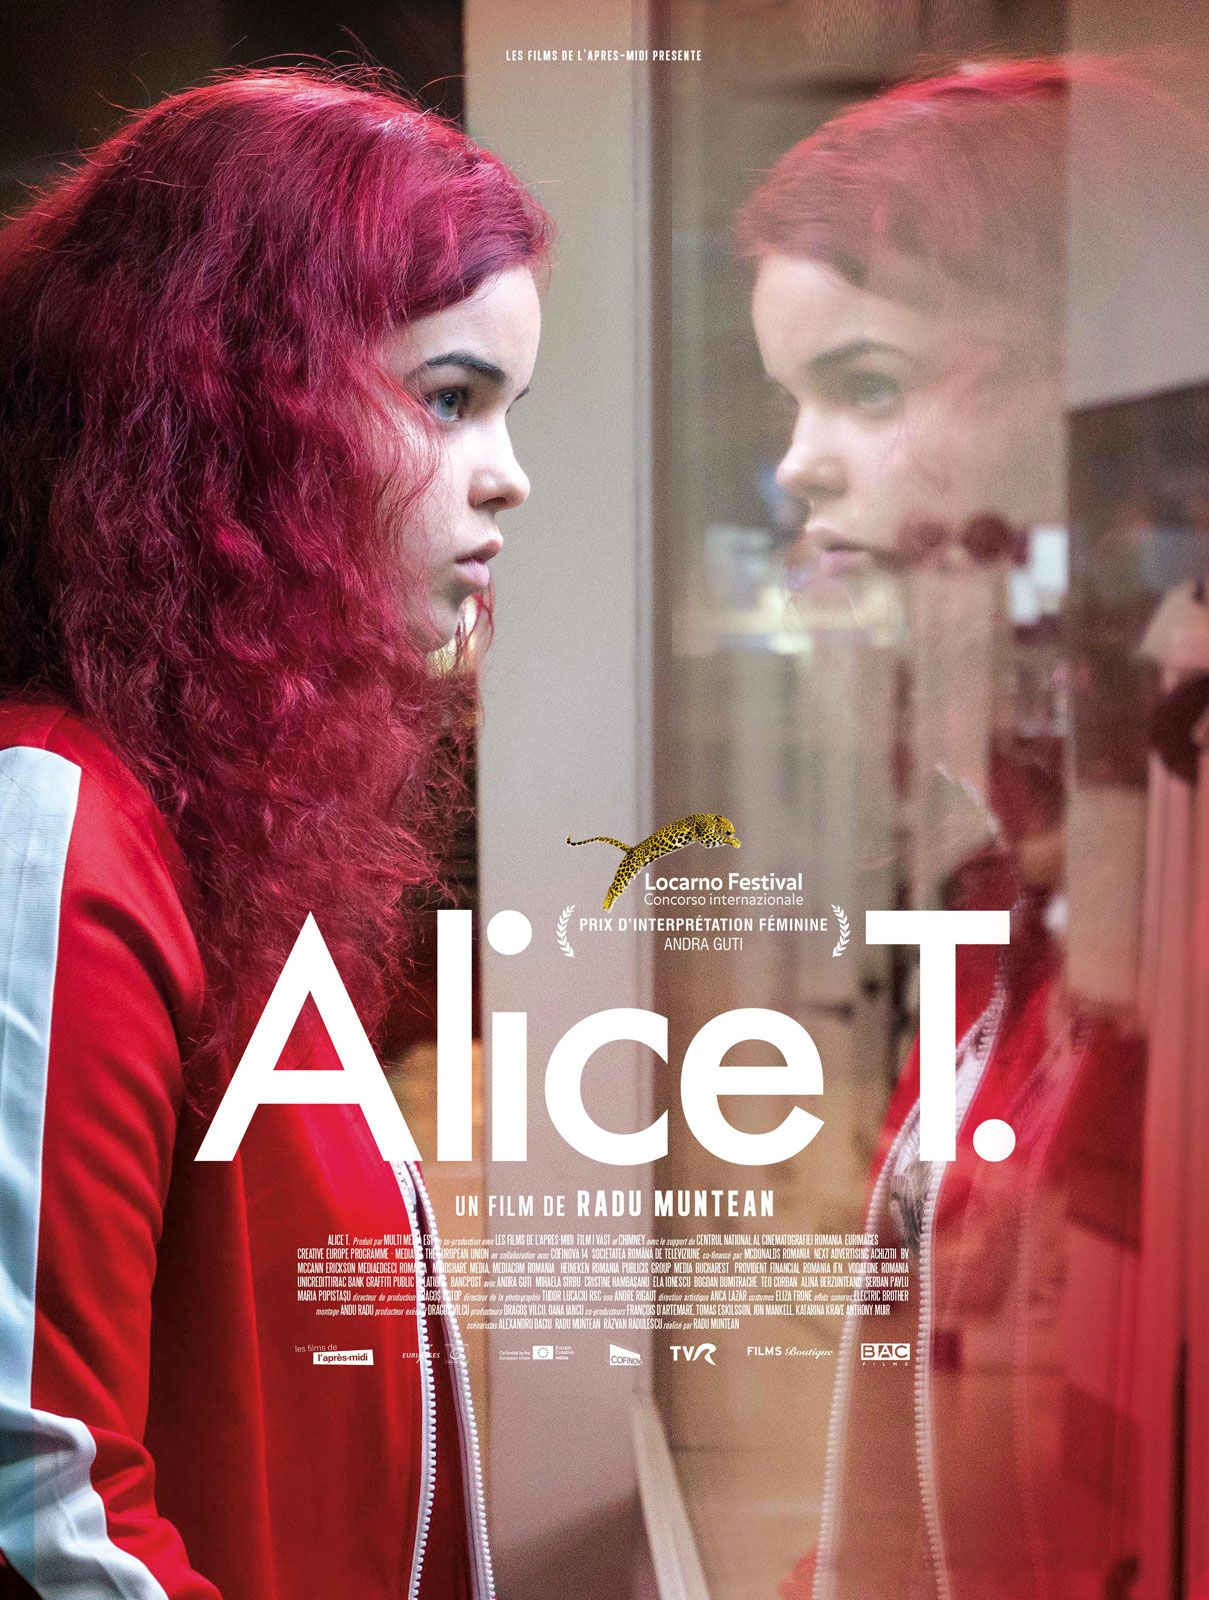 Alice T. - Film (2019) streaming VF gratuit complet